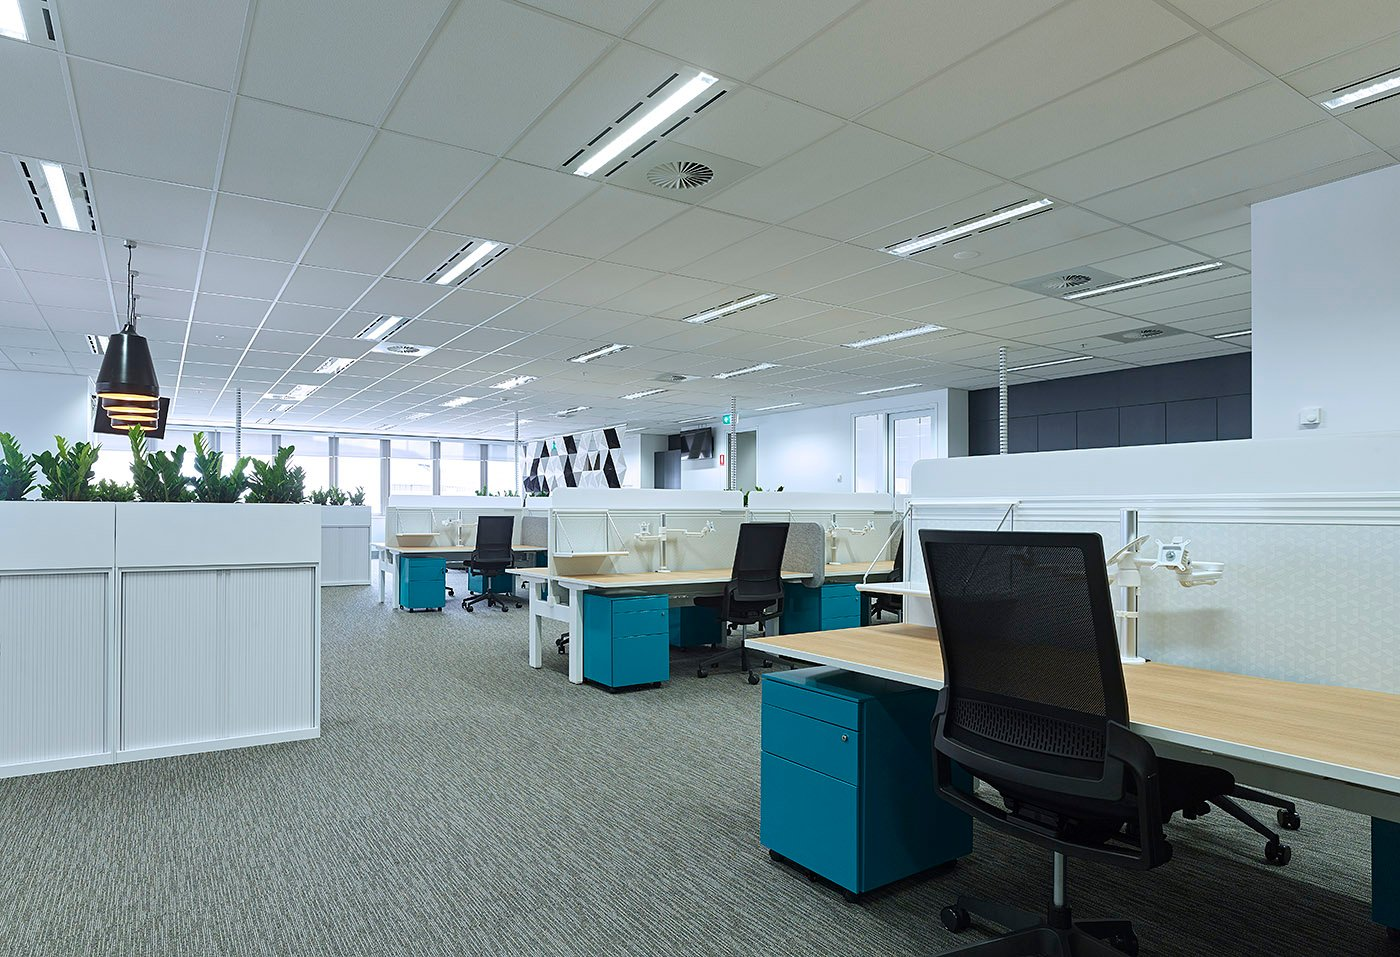 Ausure Brisbane Tenant Representation, Interior Design, Project & Construction Management Project Image 6 by PCG